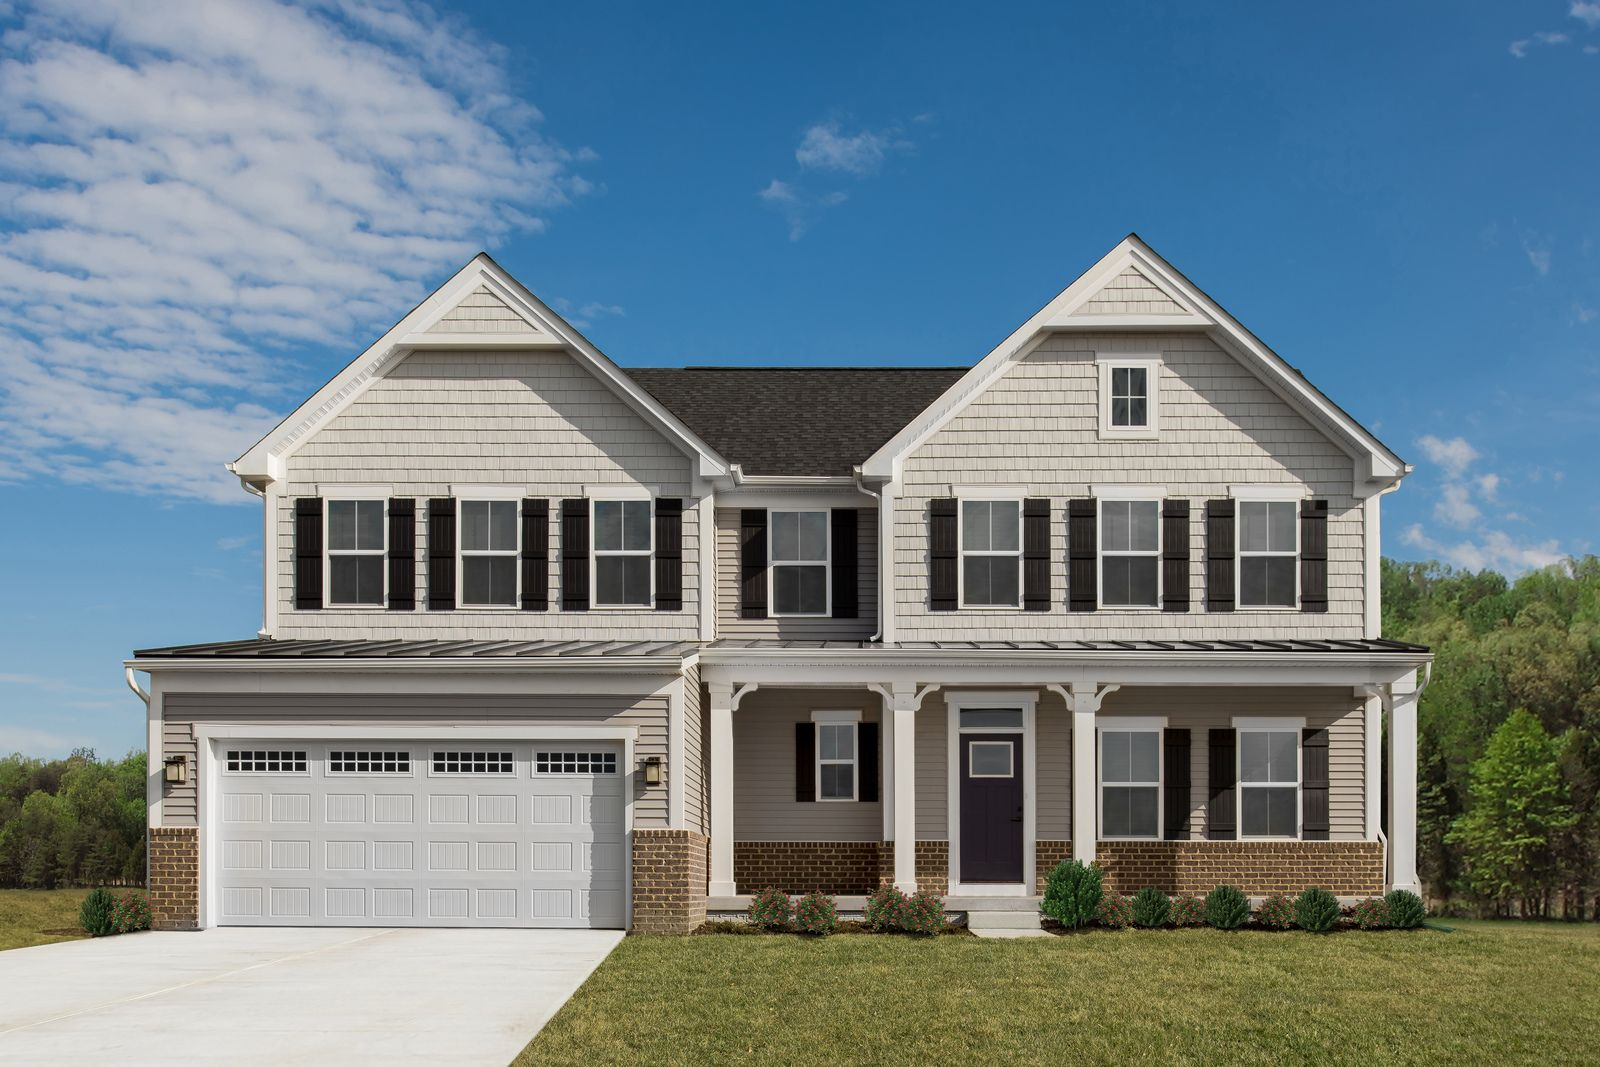 WELCOME HOME TO SARATOGA HILLS:Amenity-filled new homes with a pool, clubhouse, & playground! Spacious, cul-de-sac yards up to 1/2 acre—fences & sheds permitted. From upper $200s.Click here to schedule your visit!